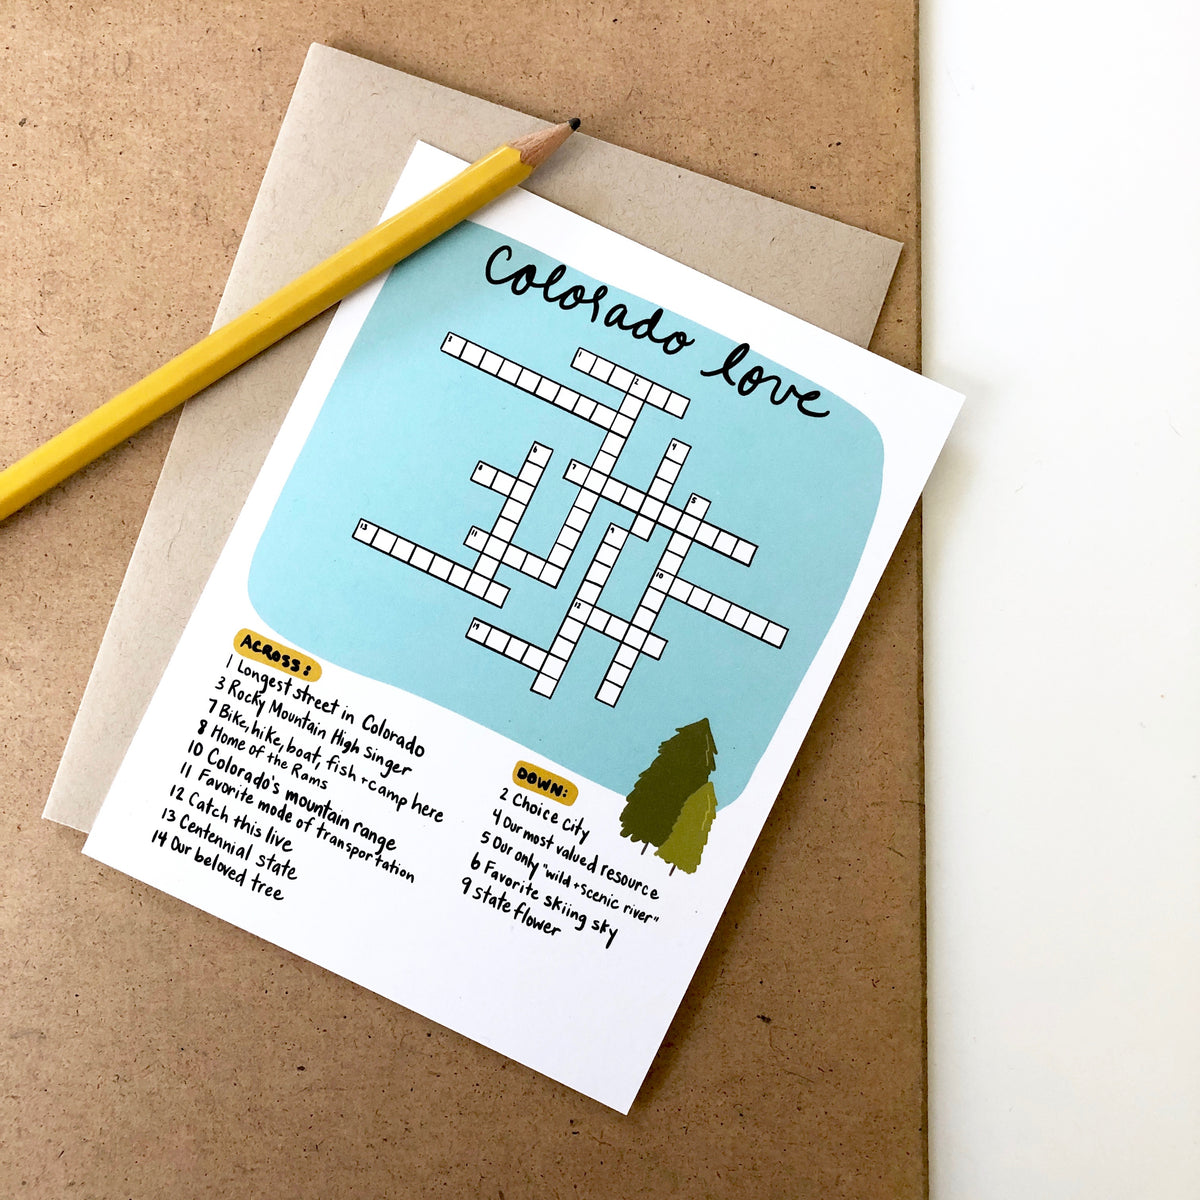 Colorado Crossword Puzzle Card